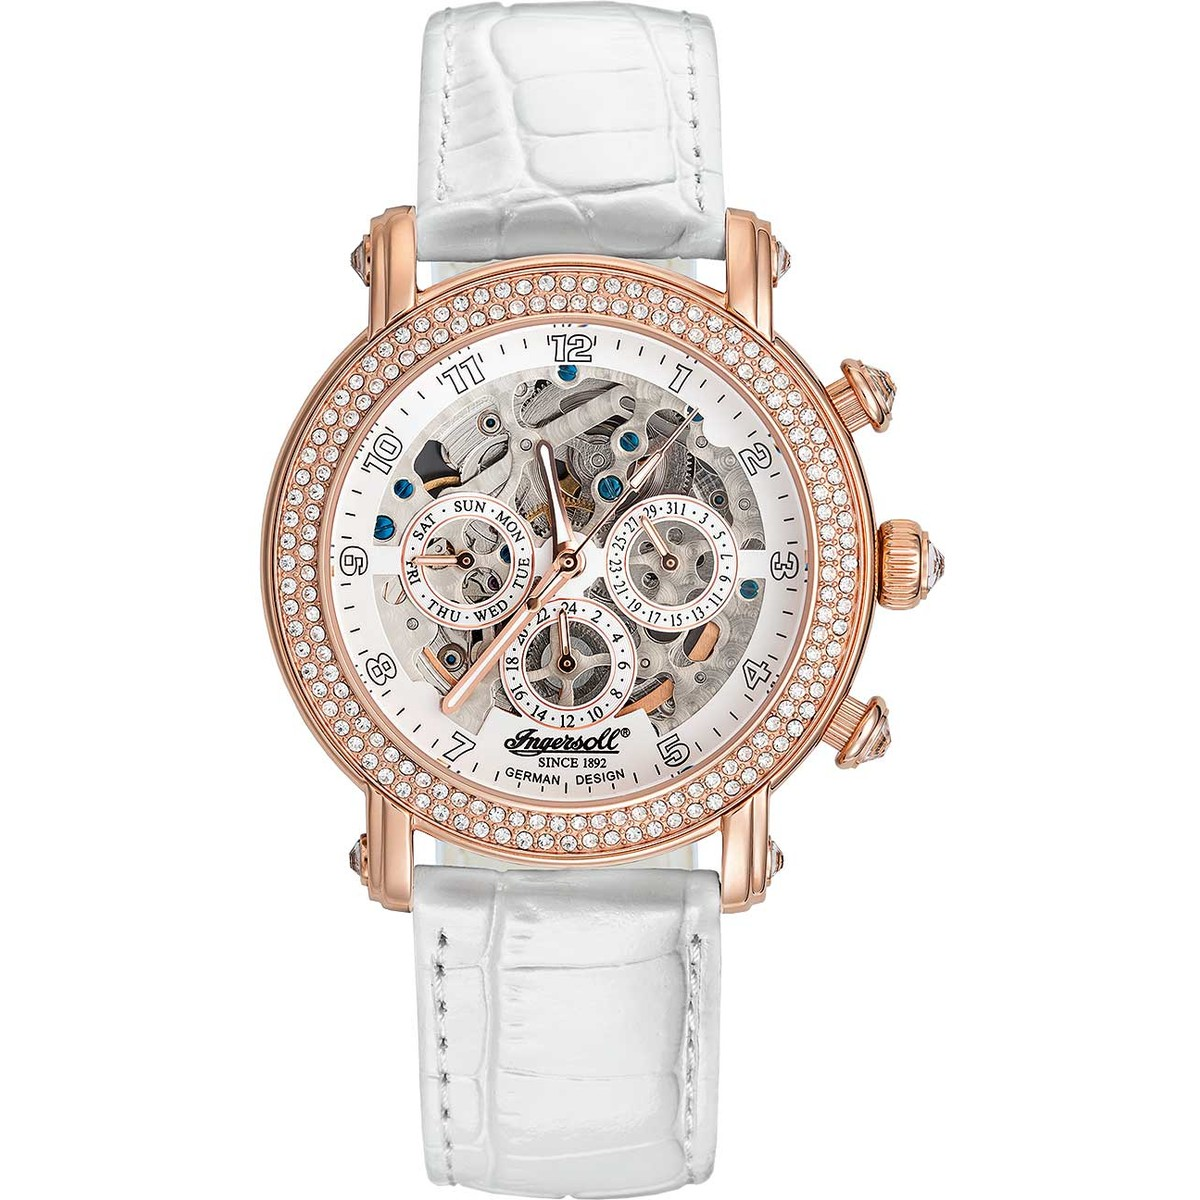 Ceas dama Ingersoll Dream IN7202RWH automatic original de mana